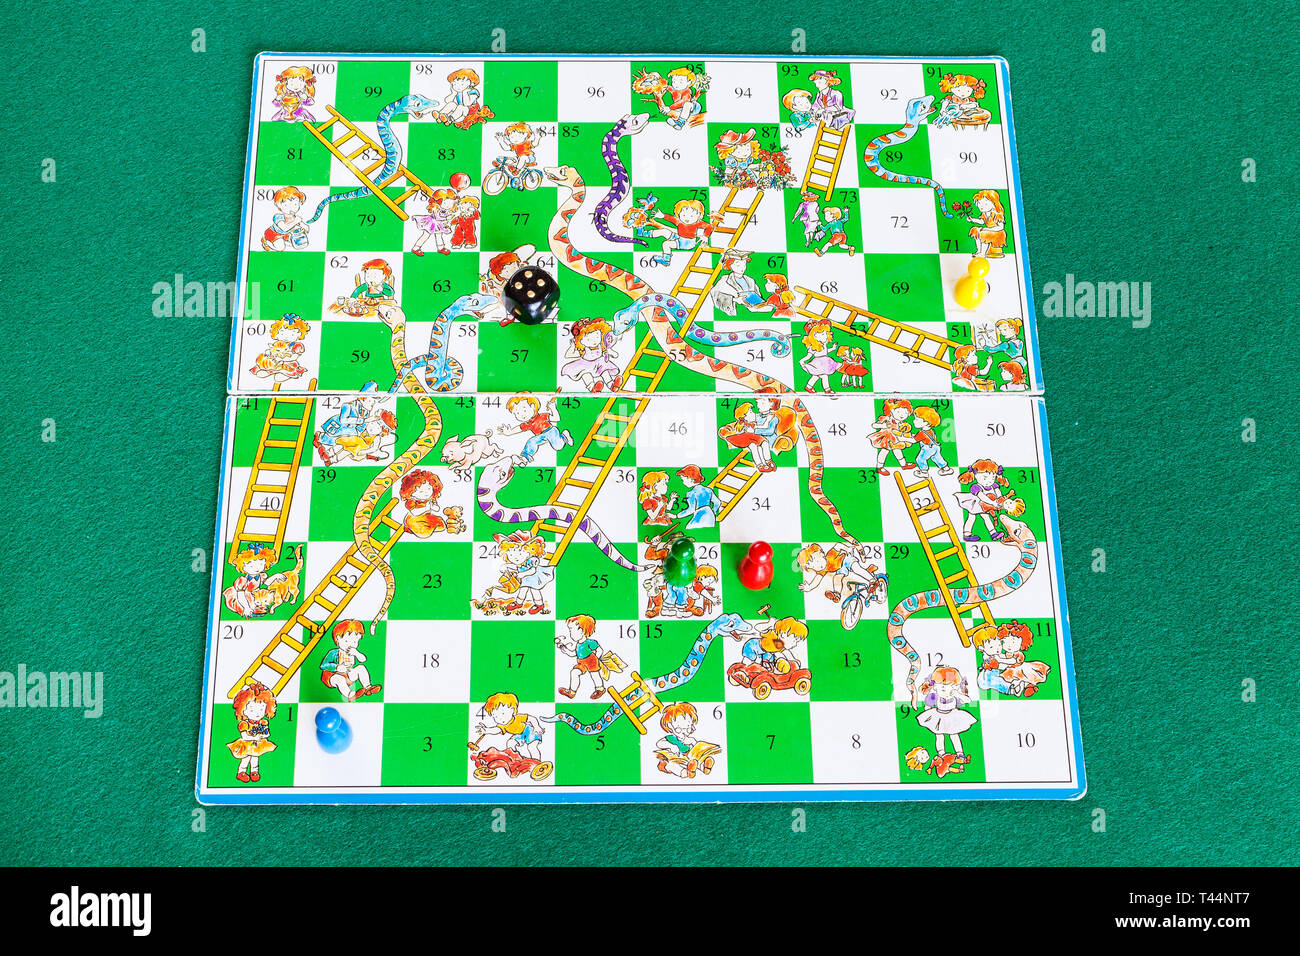 Chutes And Ladders High Resolution Stock Photography And Images Alamy